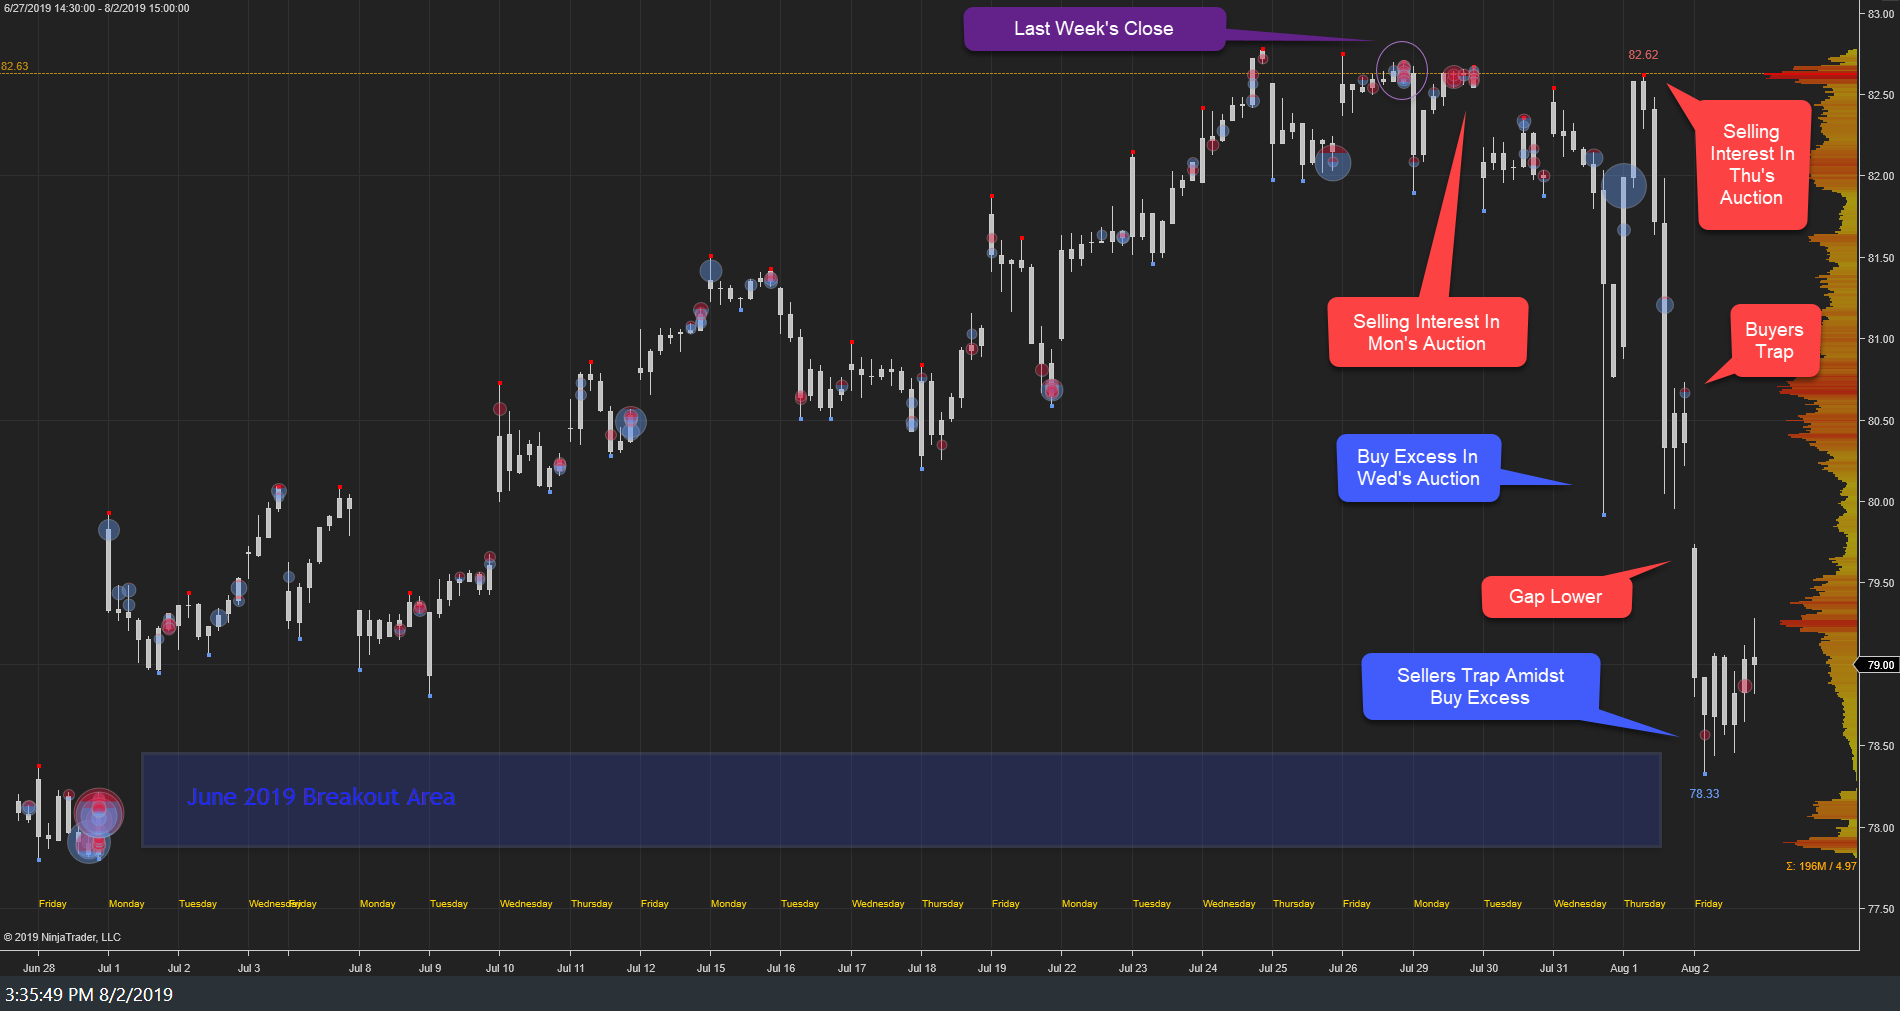 XLK Weekly: Initial Correction Continues Following The Recent All-Time High